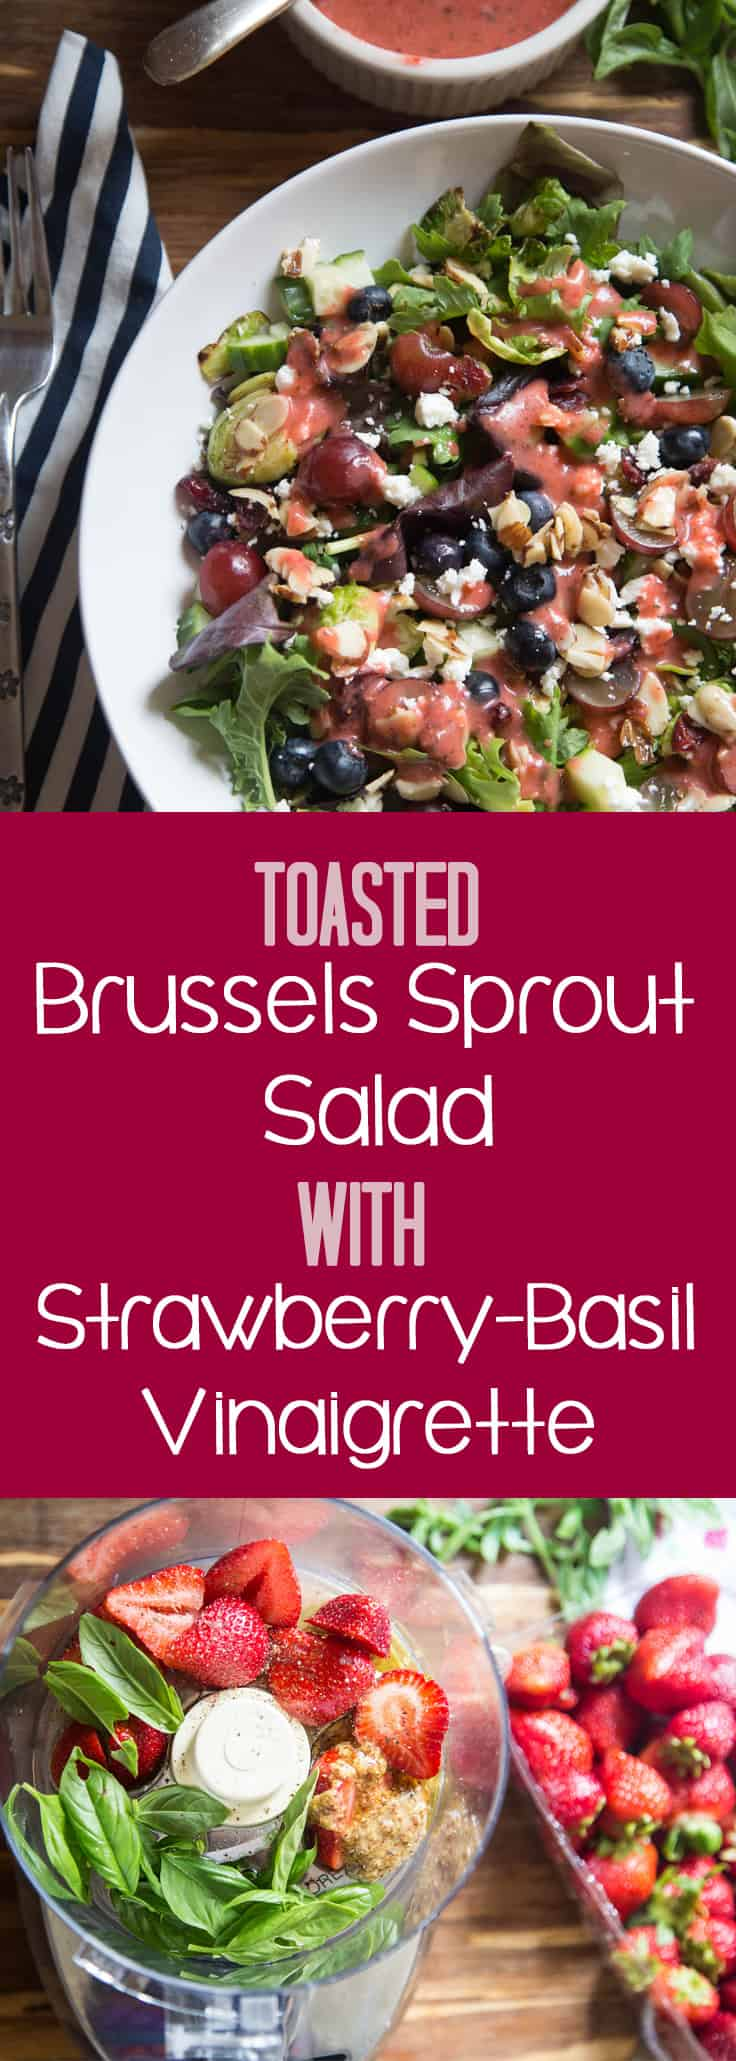 Toasted Brussels Sprout Salad with Strawberry-Basil Vinaigrette